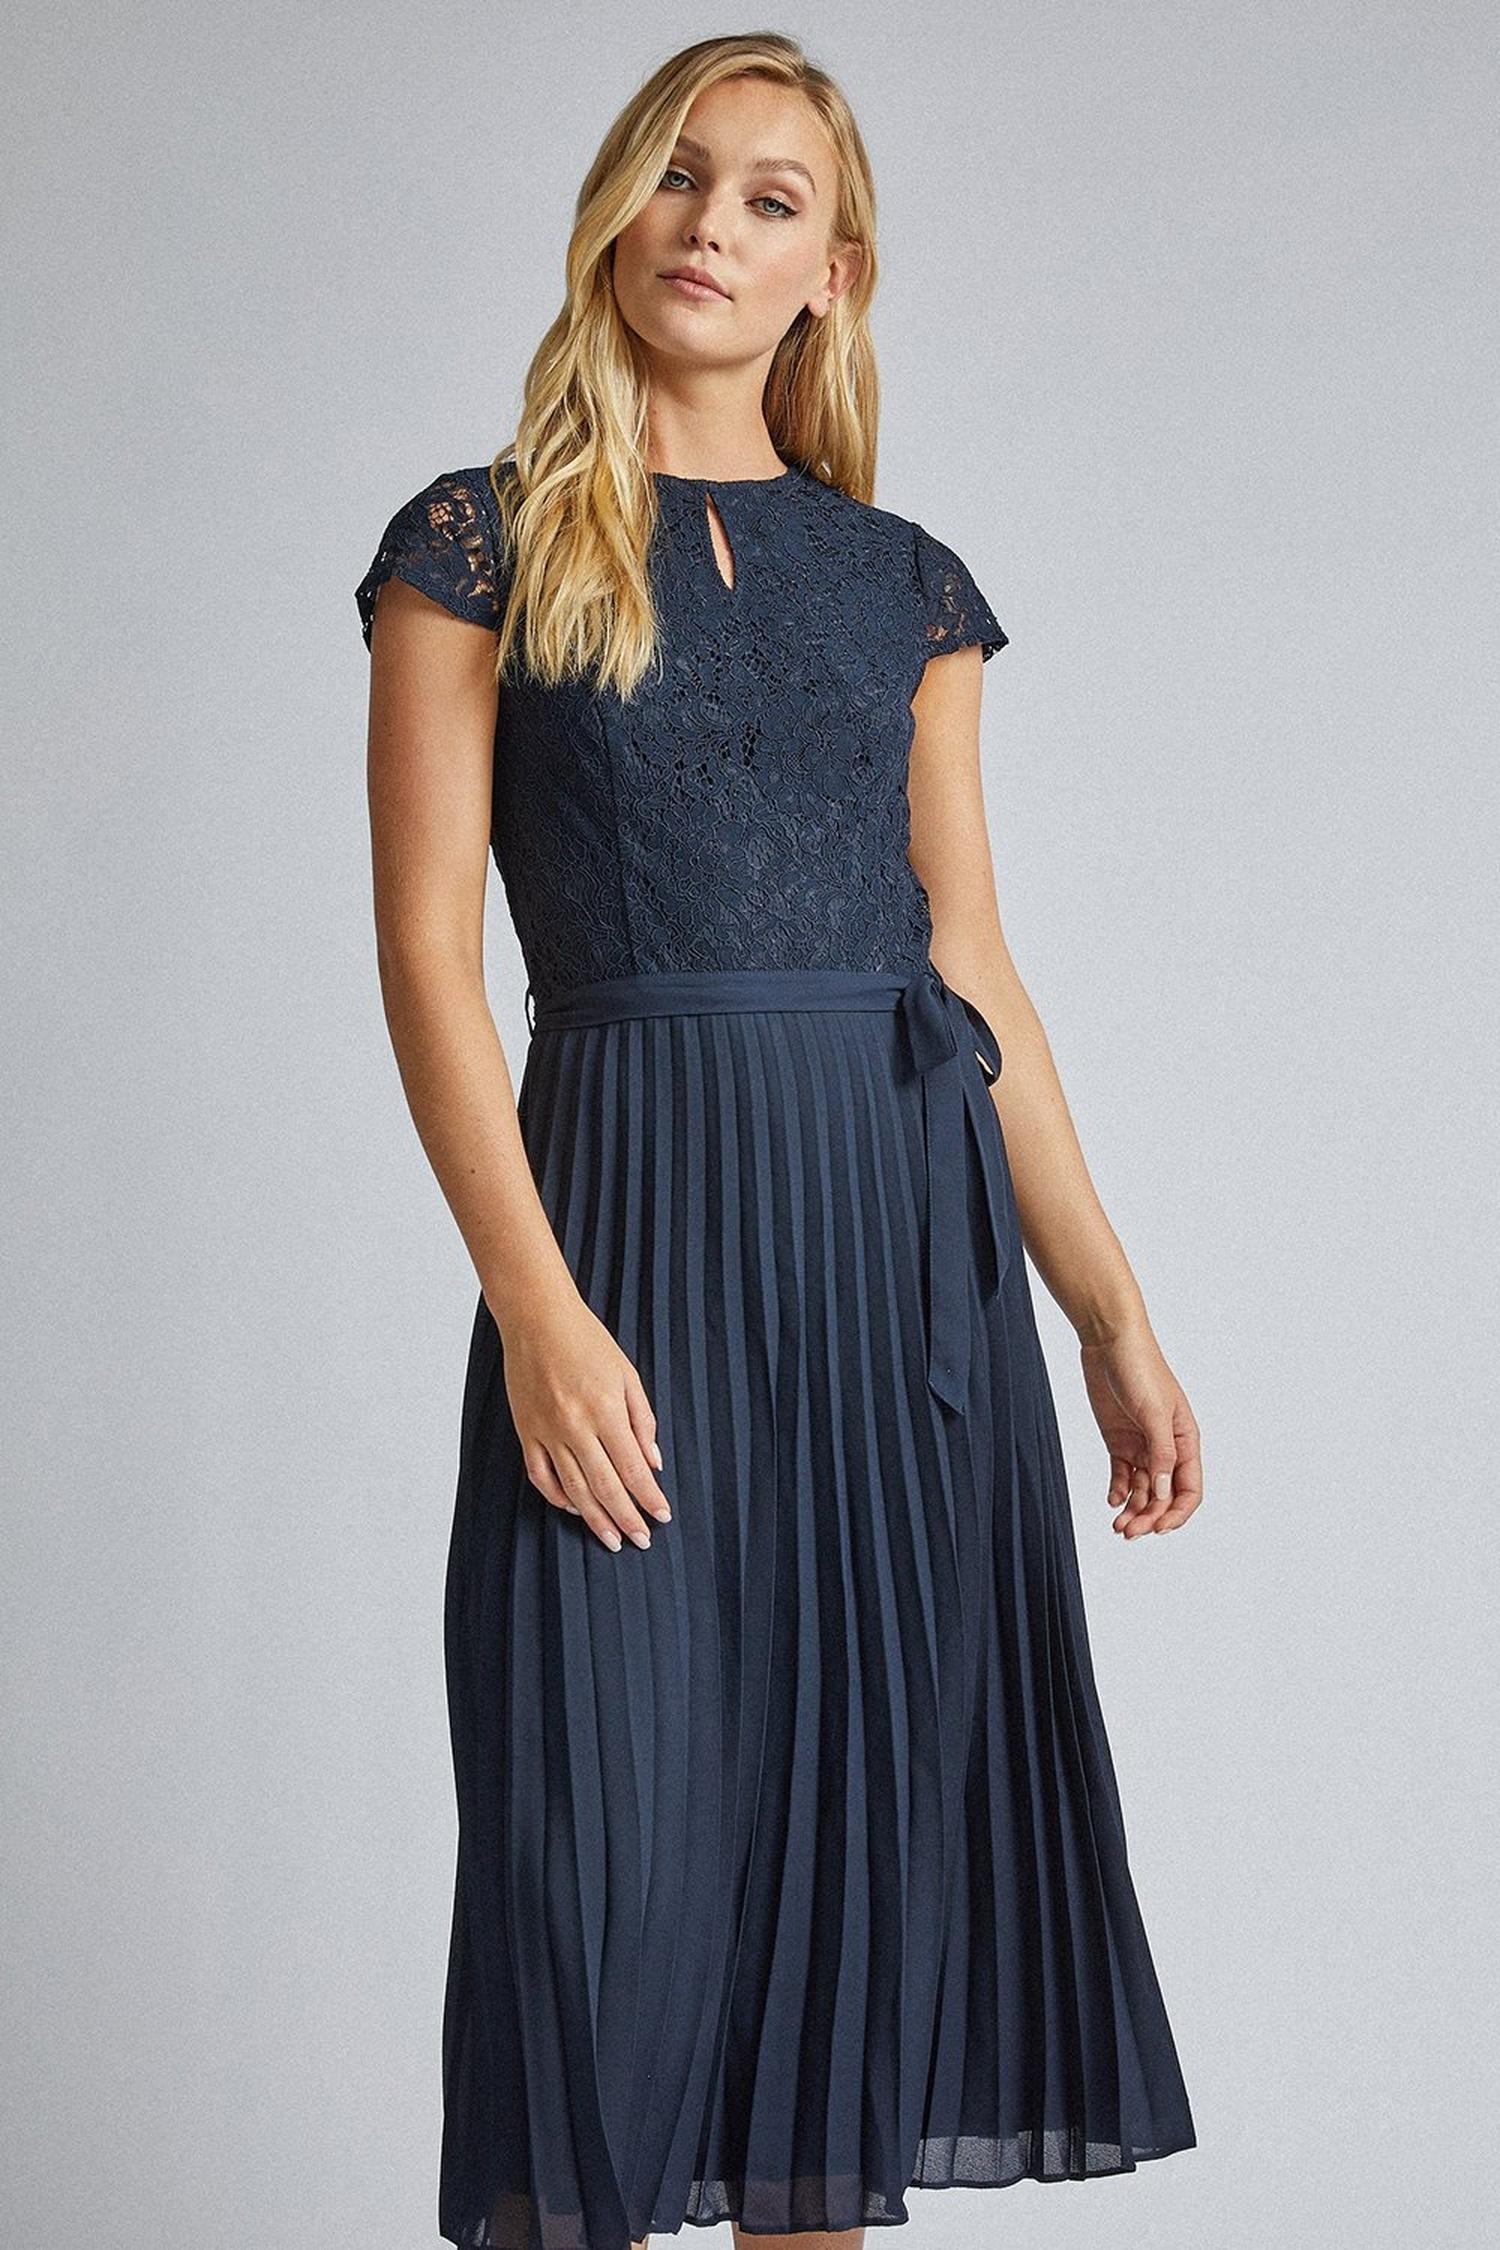 148 Tall Navy Blue Lace Pleated Dress image number 3